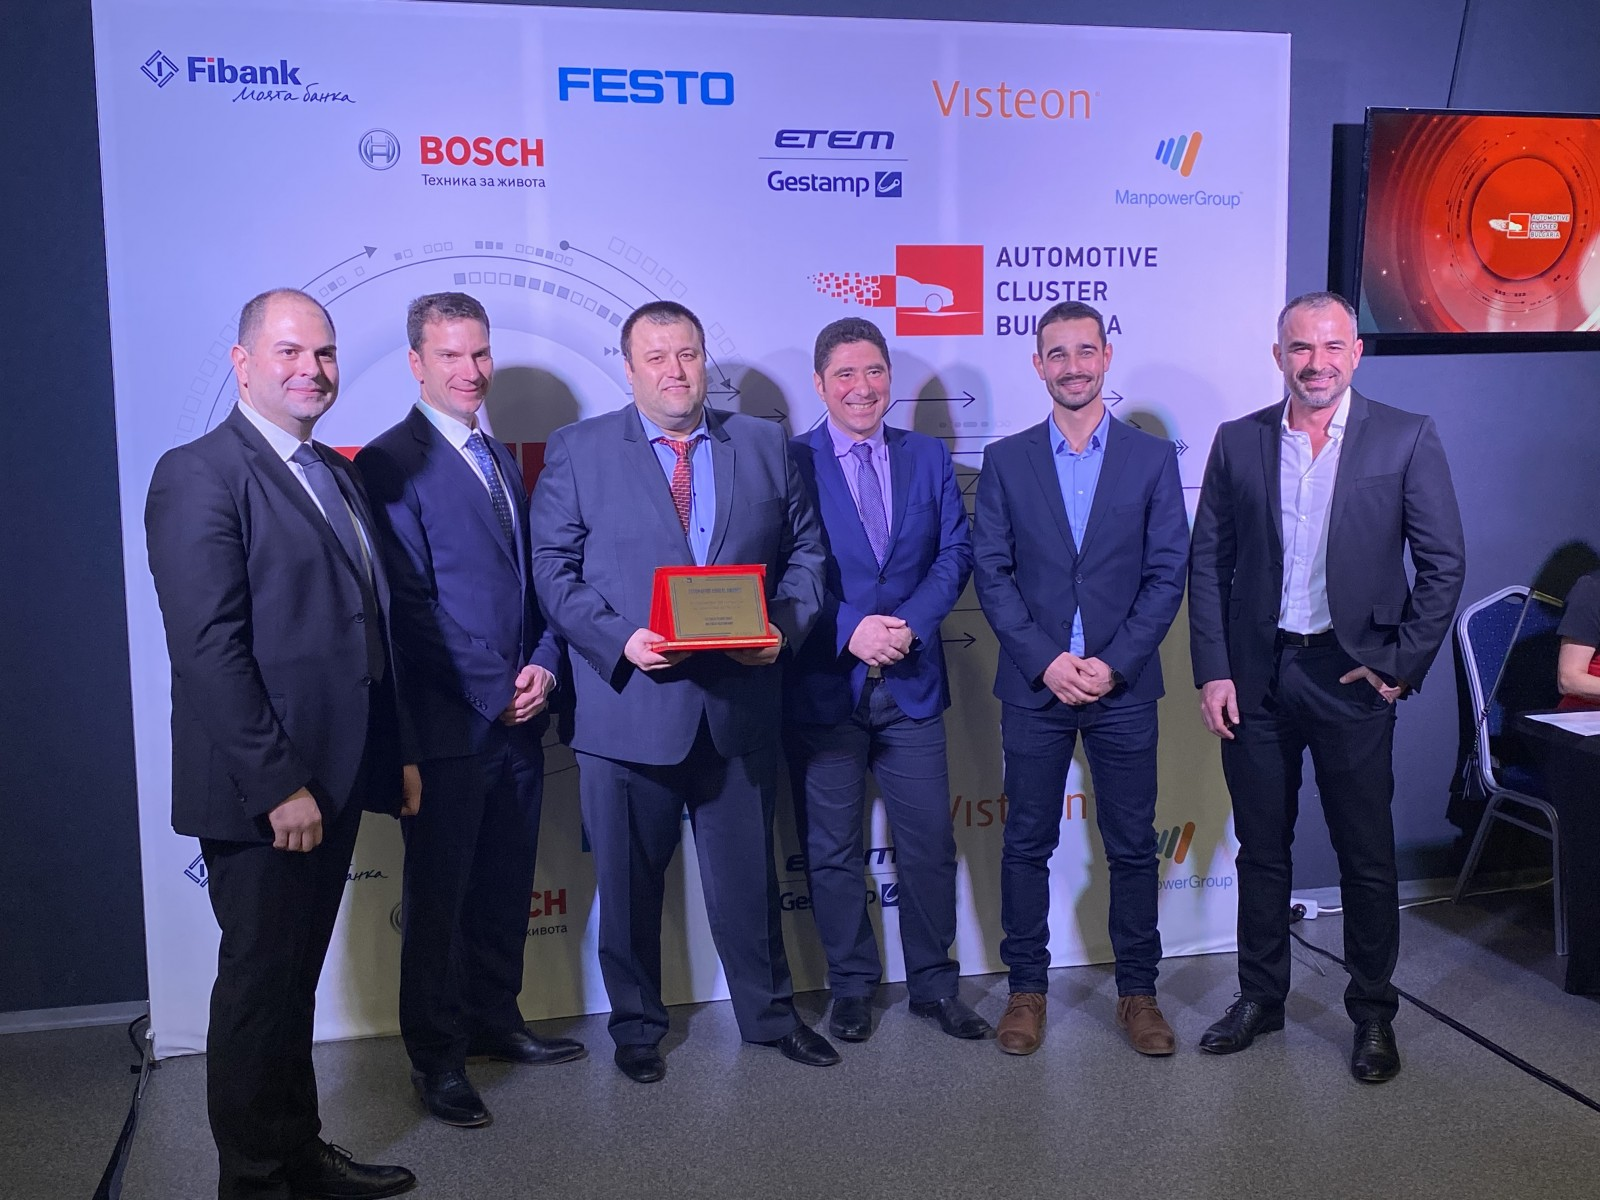 Visteon representatives receive the R&D award in Sofia